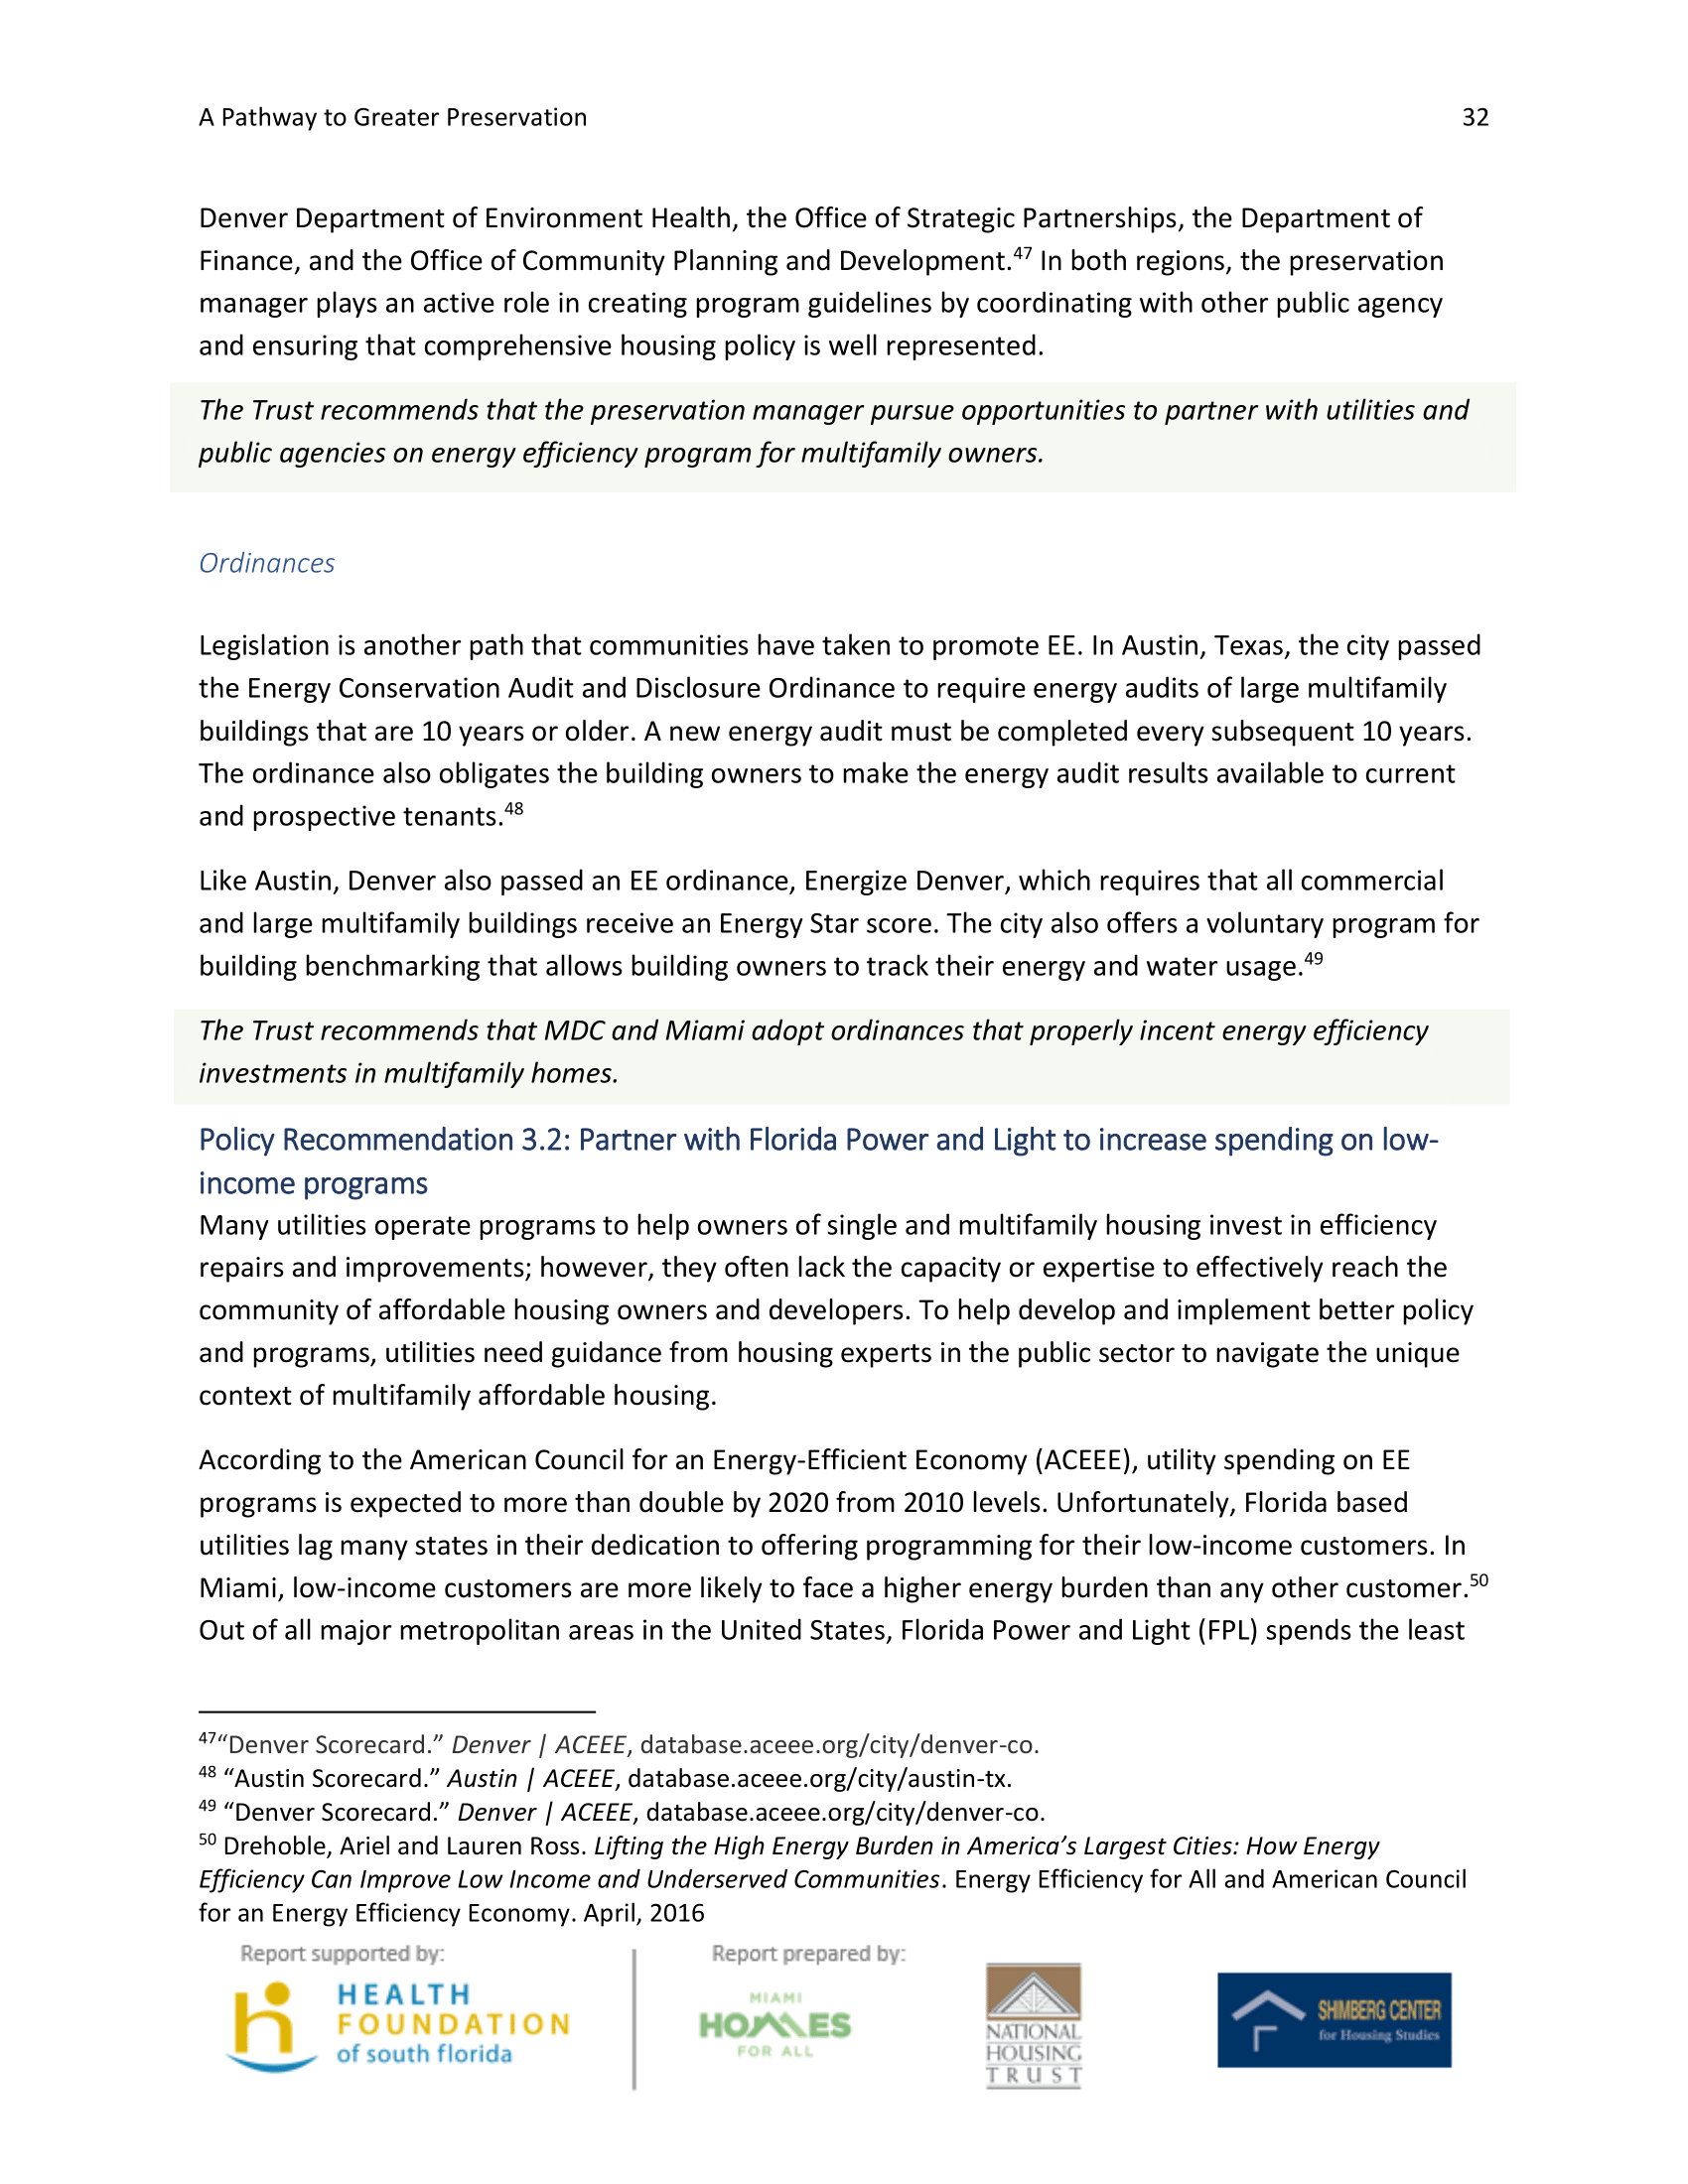 A Pathway to Greater Preservation - February 2018-40.png